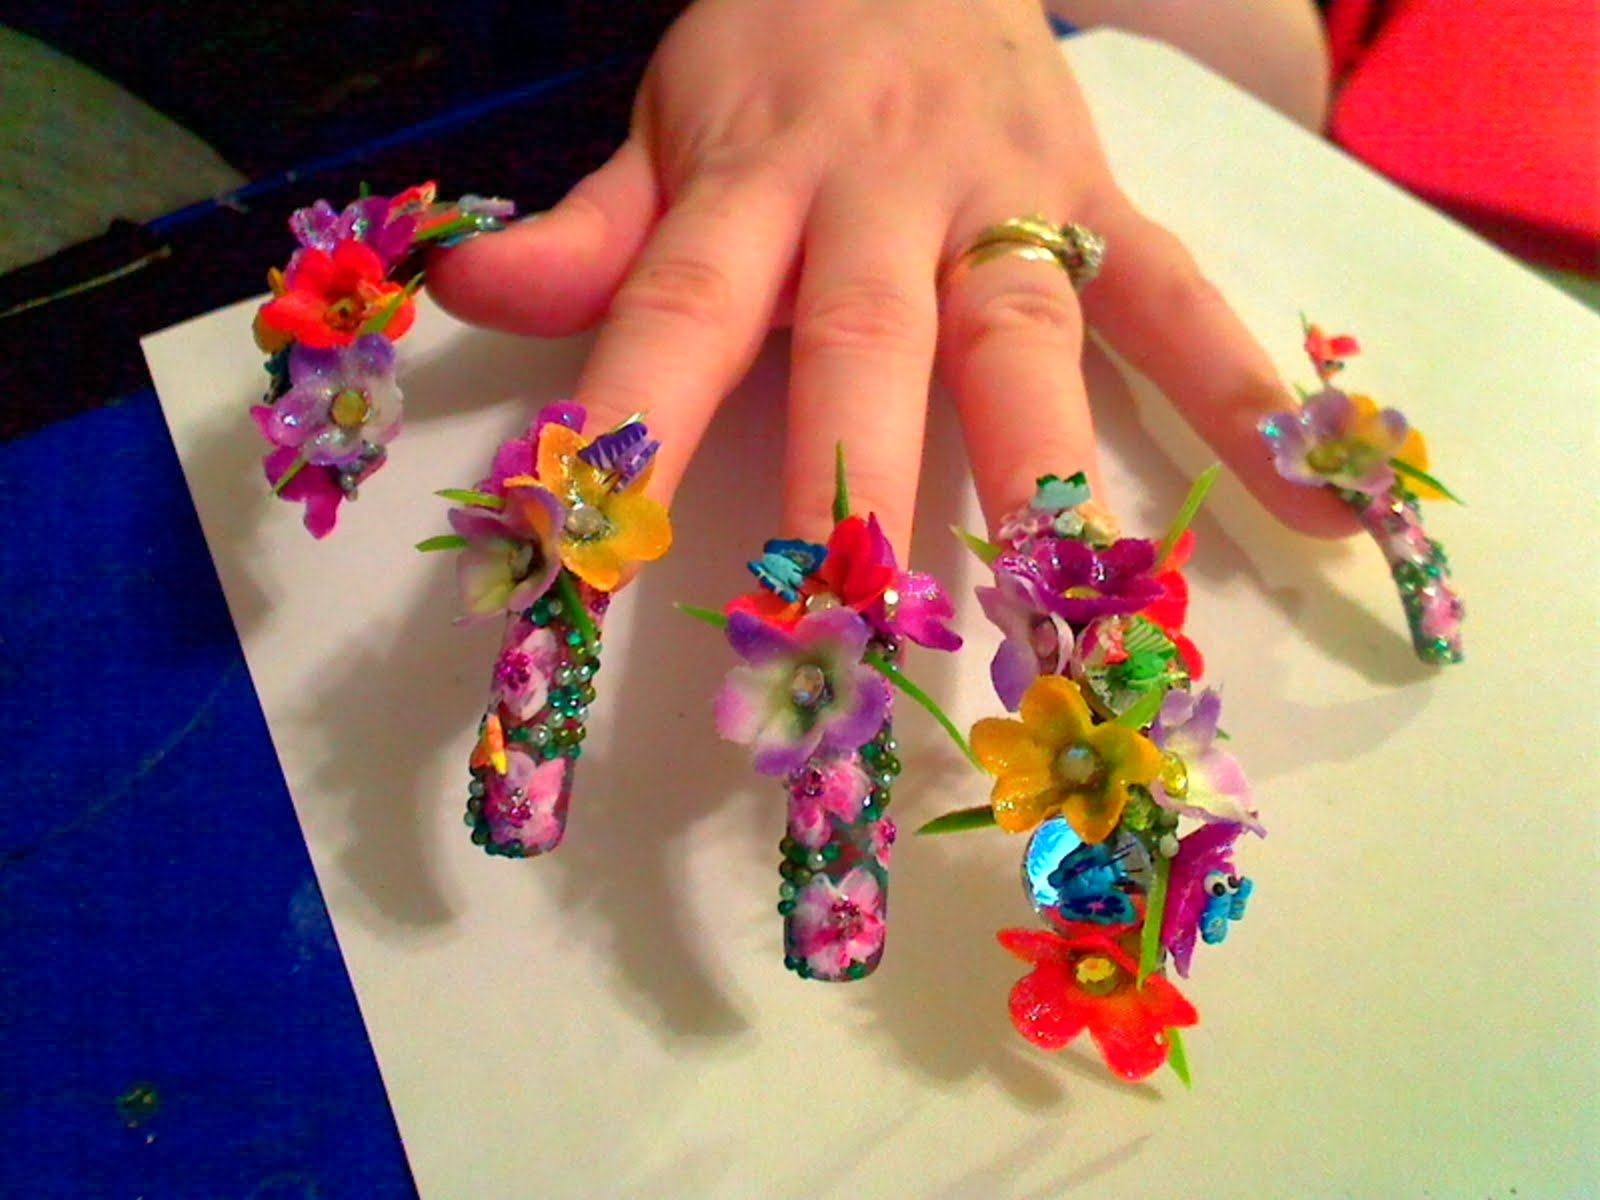 Extreme Ugly Manicure - Bing Images | Quotes | Pinterest | Manicure ...